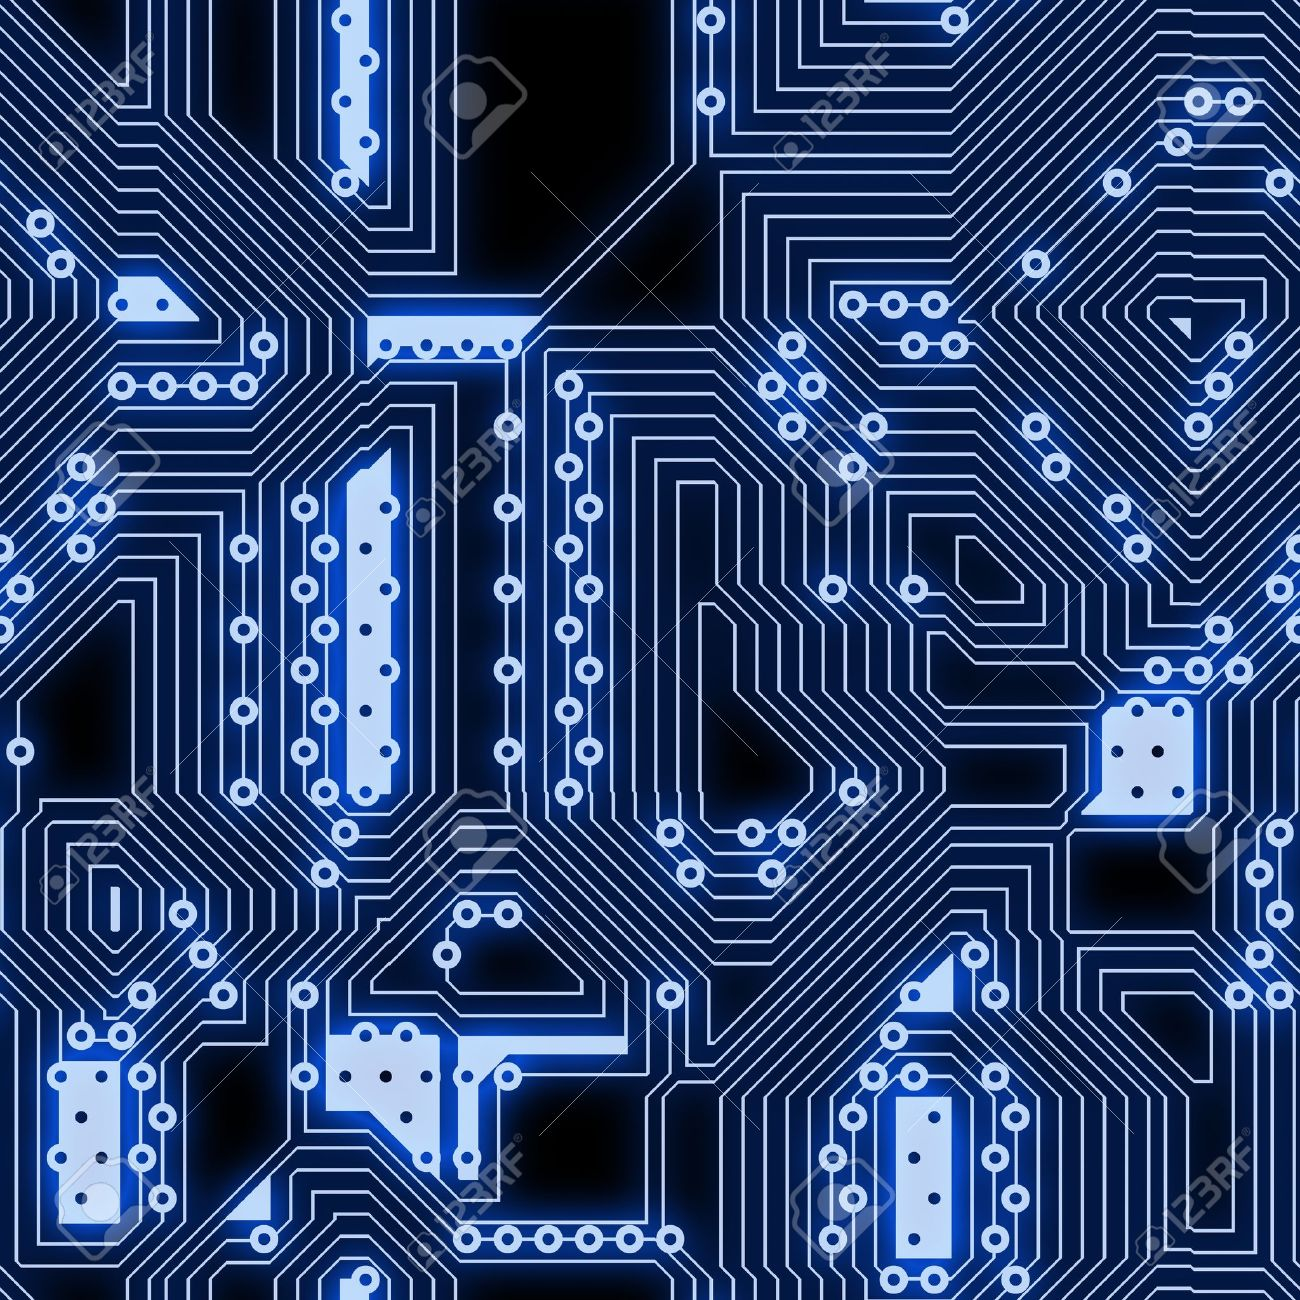 Glowing technology circuits abstract seamless background texture Stock Photo - 9298312